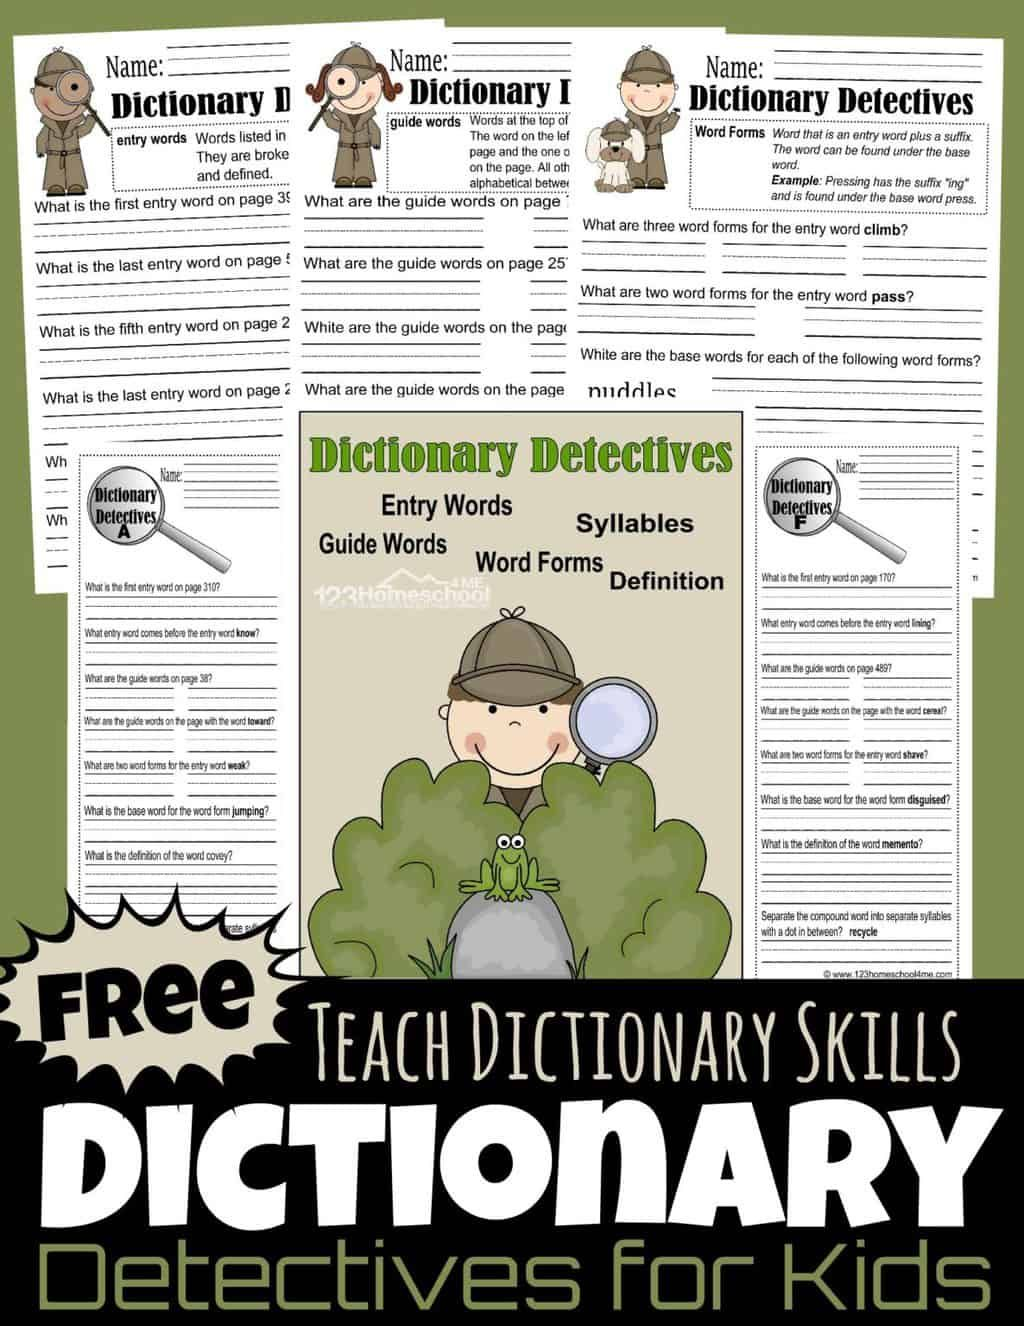 medium resolution of FREE Dictionary Detective Worksheets for Kids   Dictionary skills